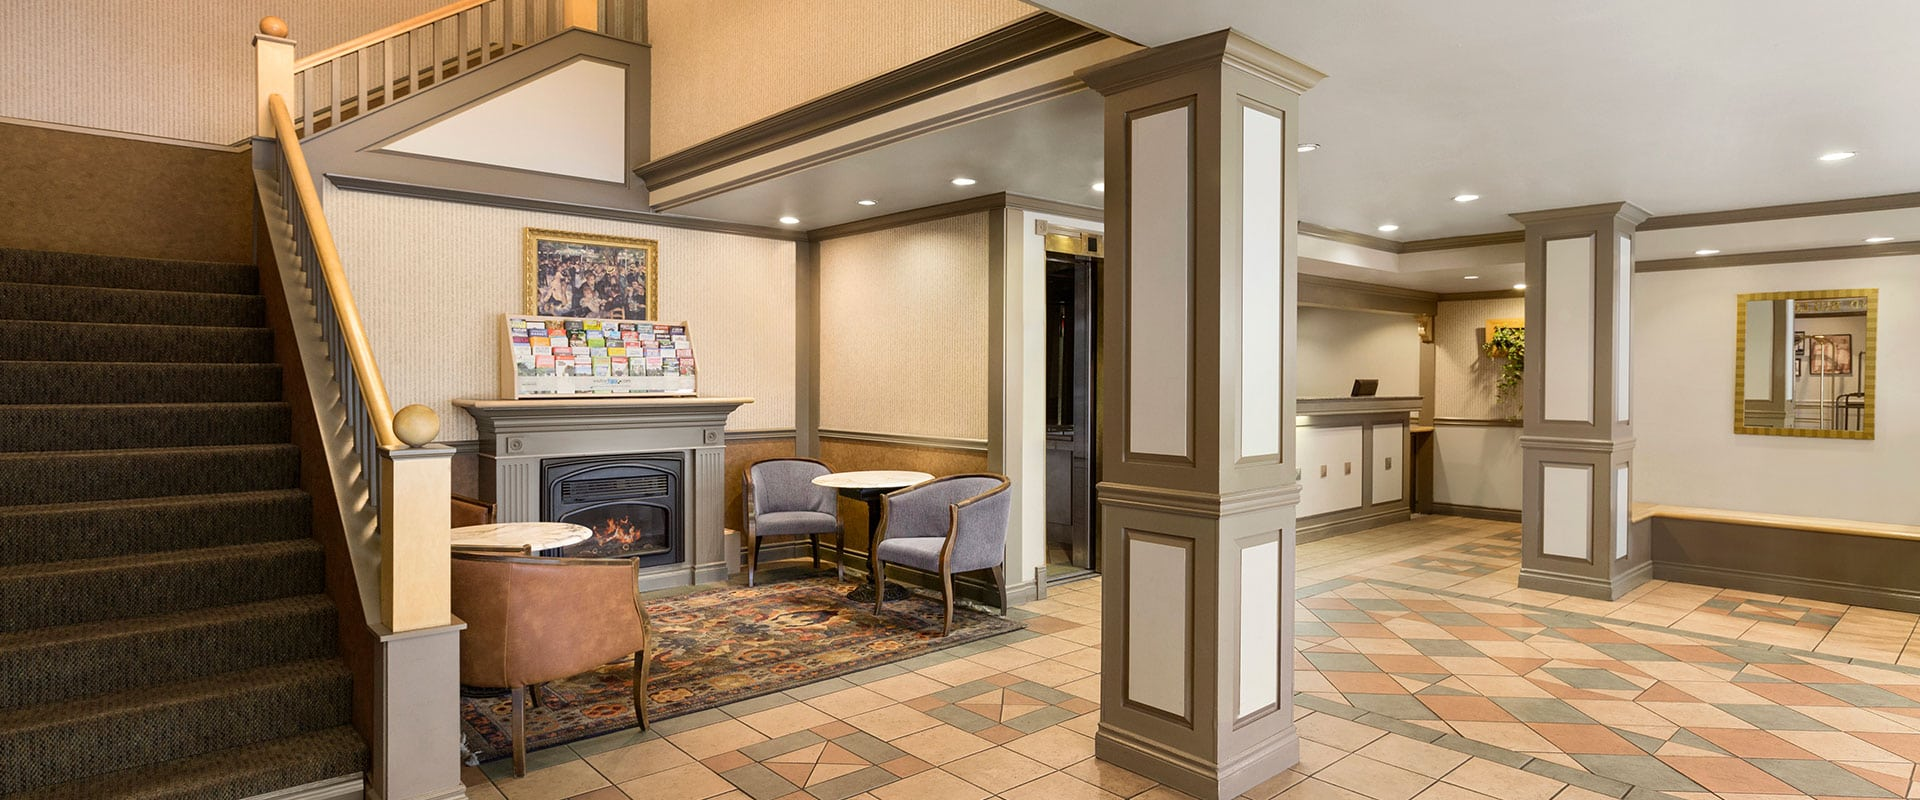 Elegant lobby at Days Inn Vancouver Downtown features a seating area with fireplace and area rug, two architectural columns and flights of stairs leading to upper floors.